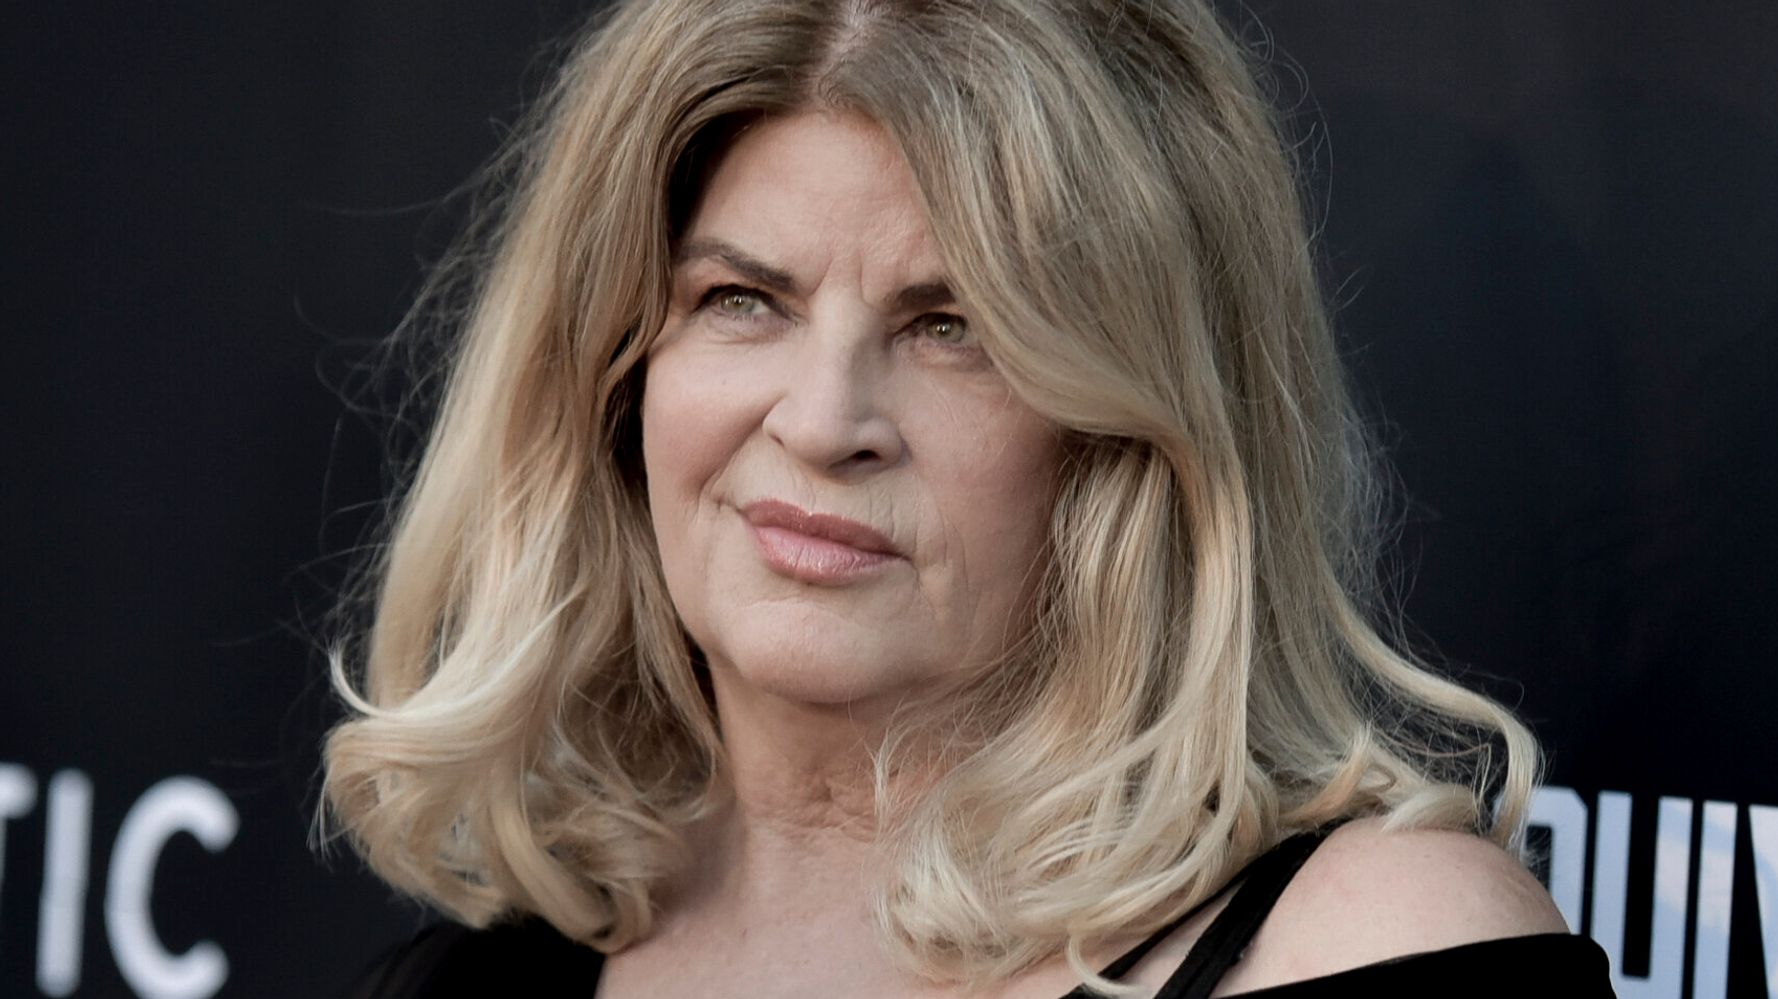 CNN Has Advice For Kirstie Alley After She Slams The Network's COVID-19 Coverage